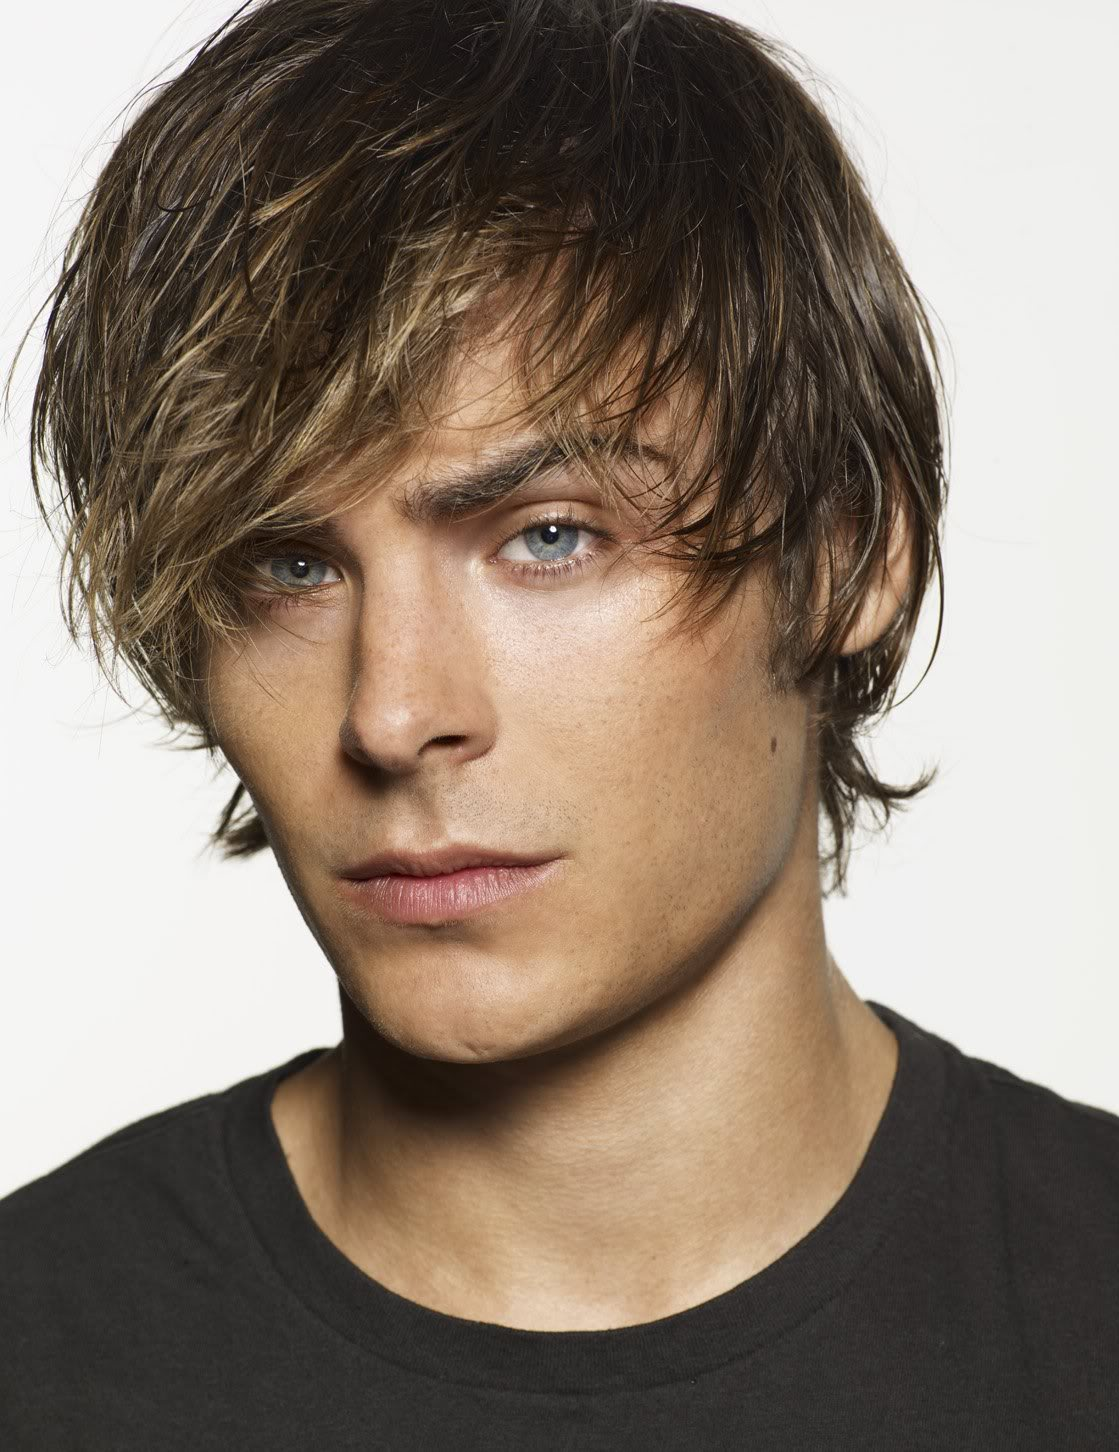 cool boys hair styles cool hairstyles for guys you might try 1609